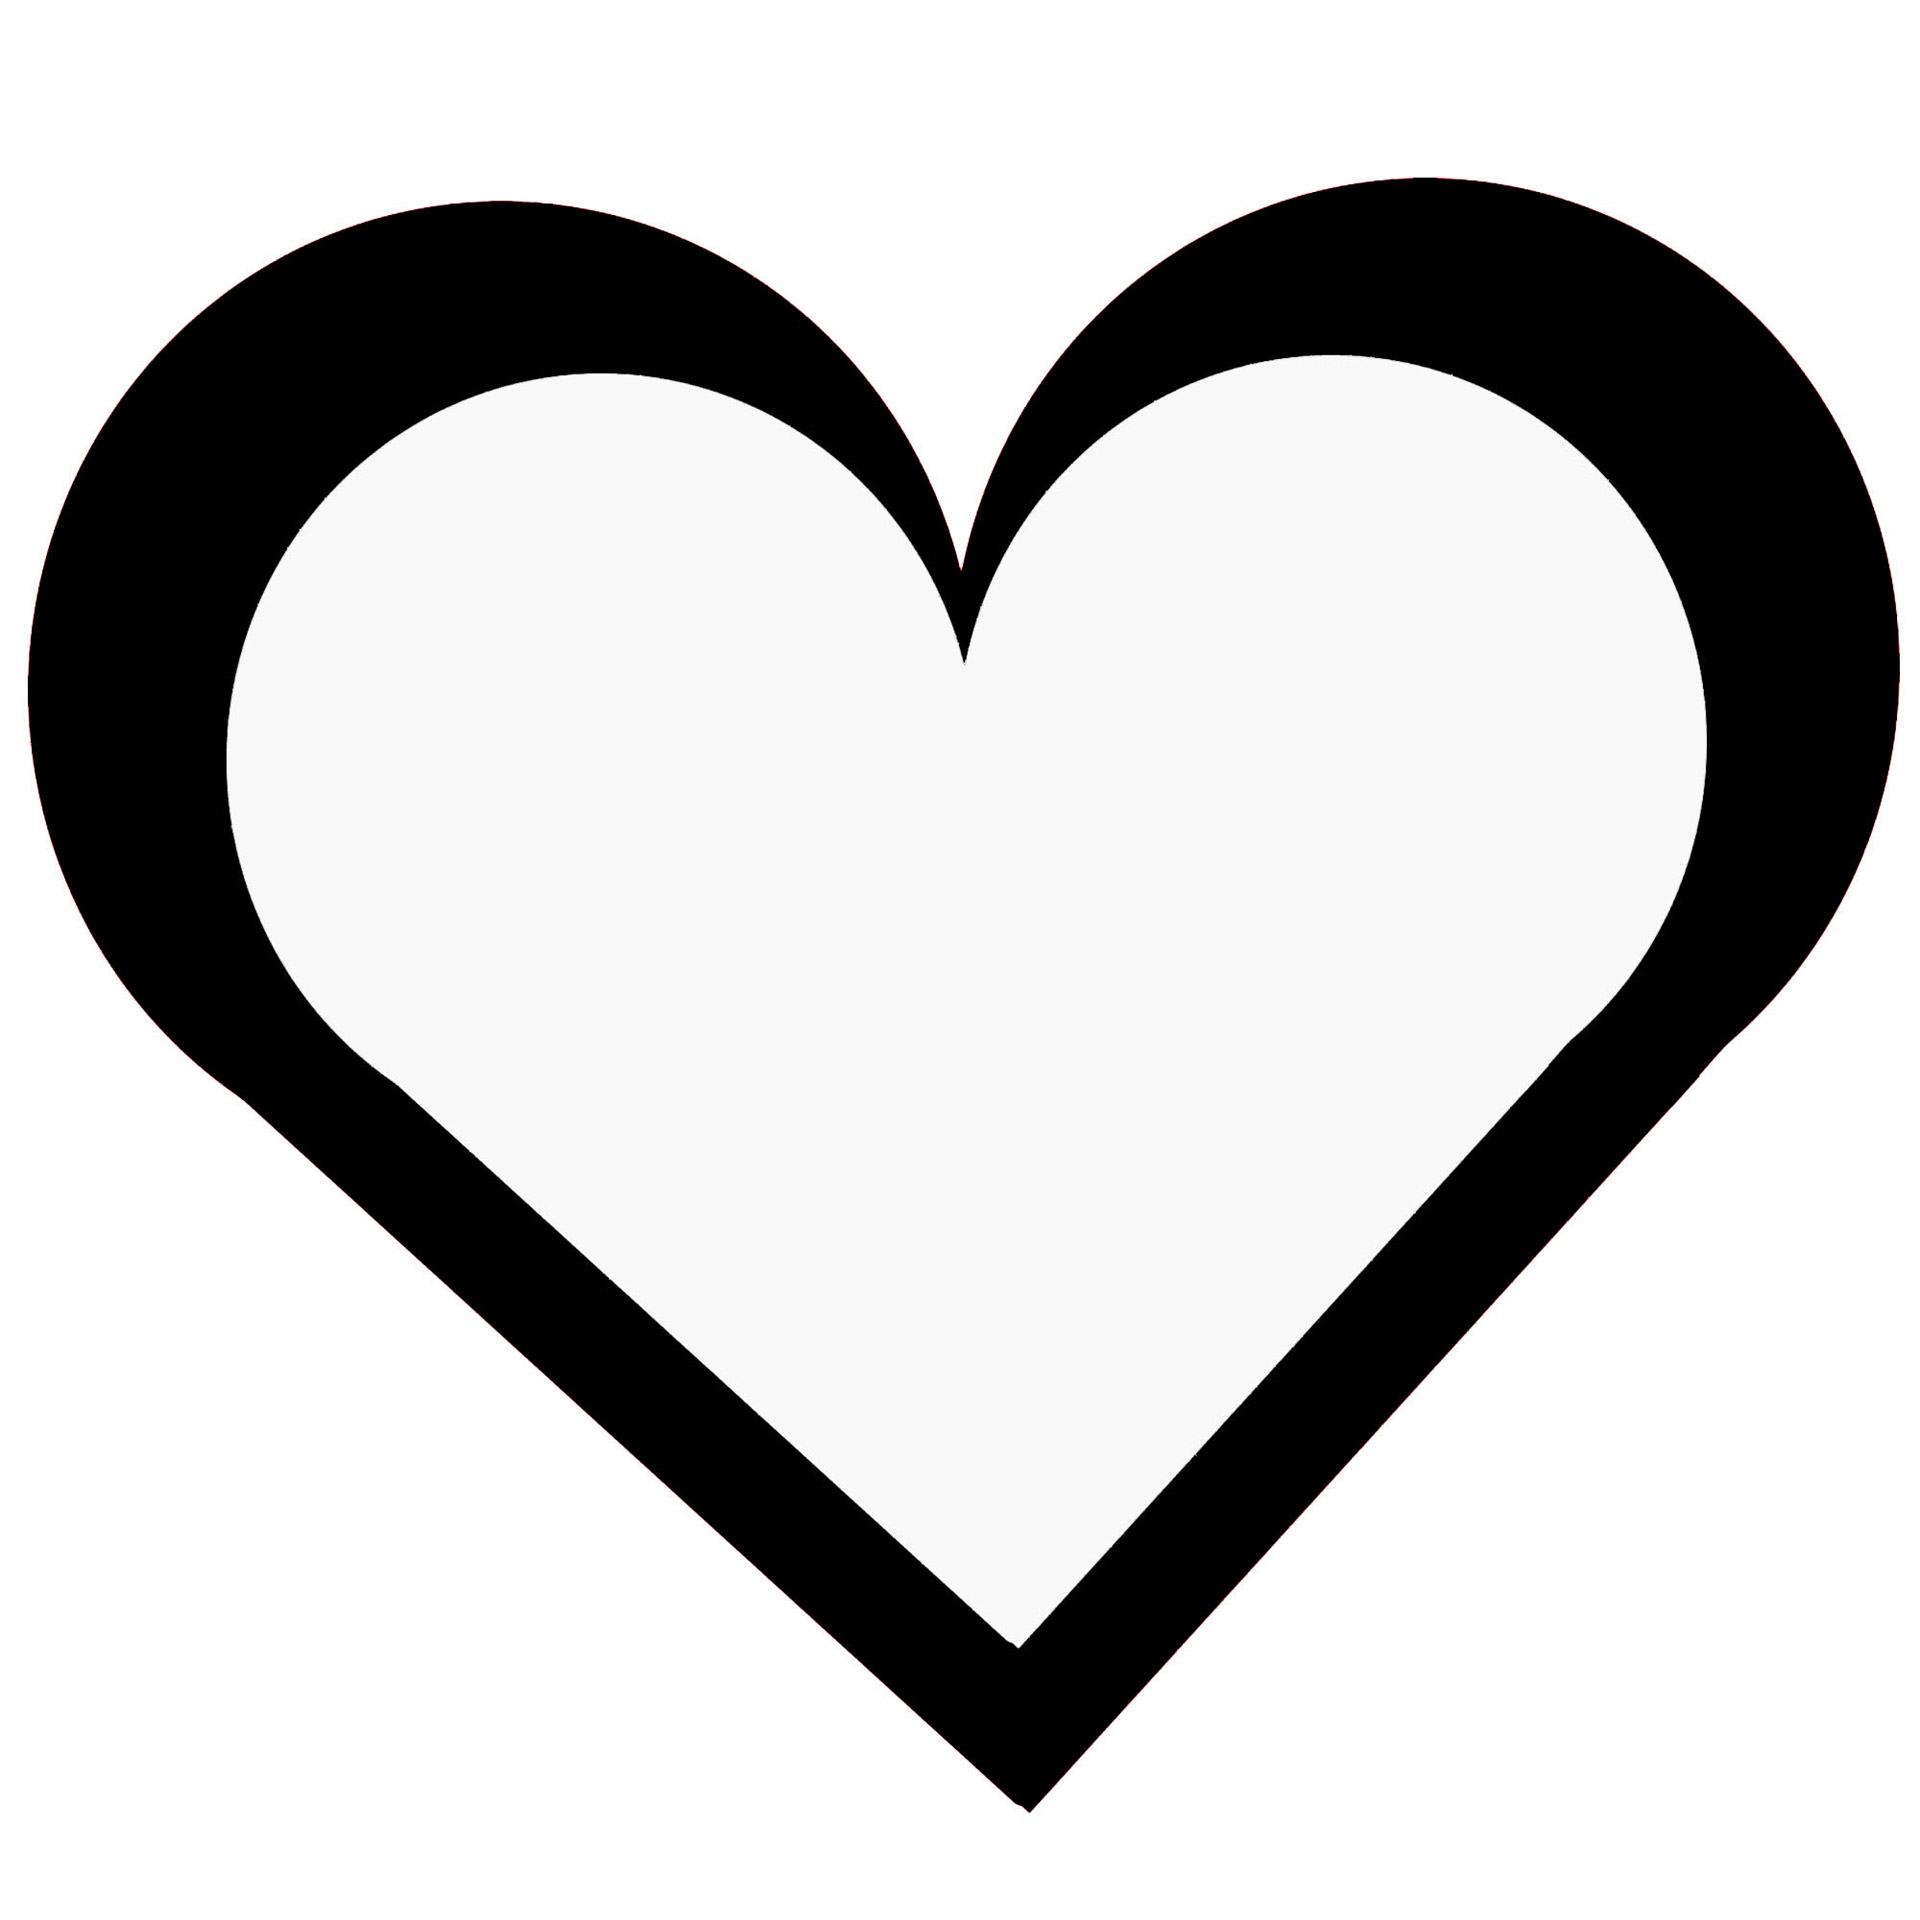 Black And White Heart Images Free Download Best Black And White